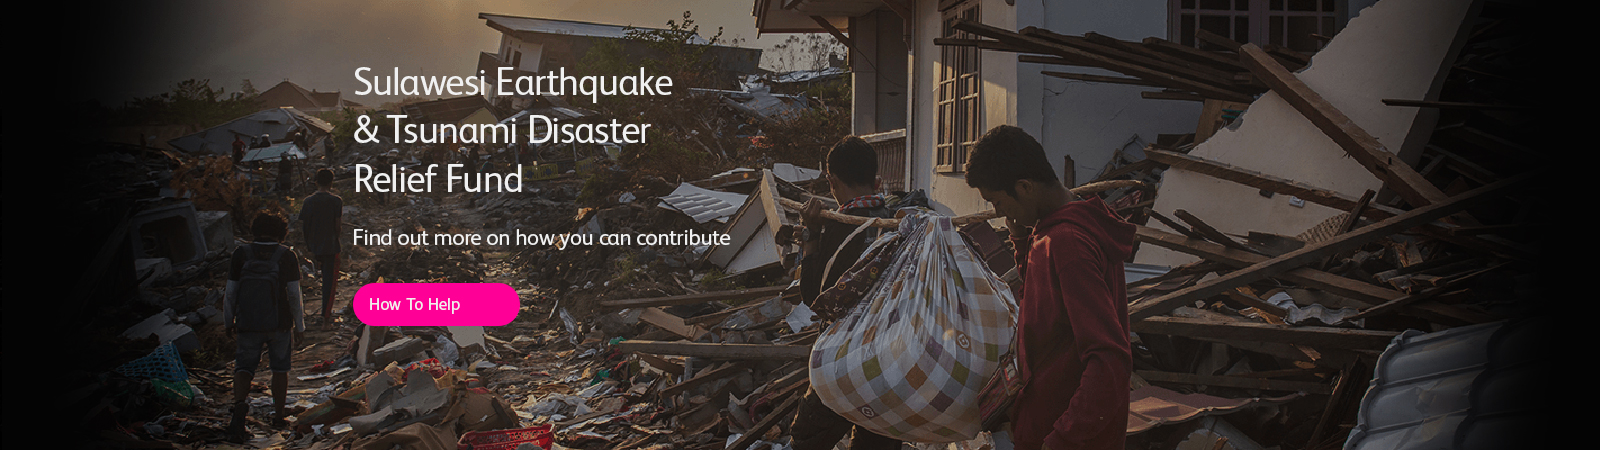 Sulawesi Earthquake & Tsunami Disaster Relief Fund